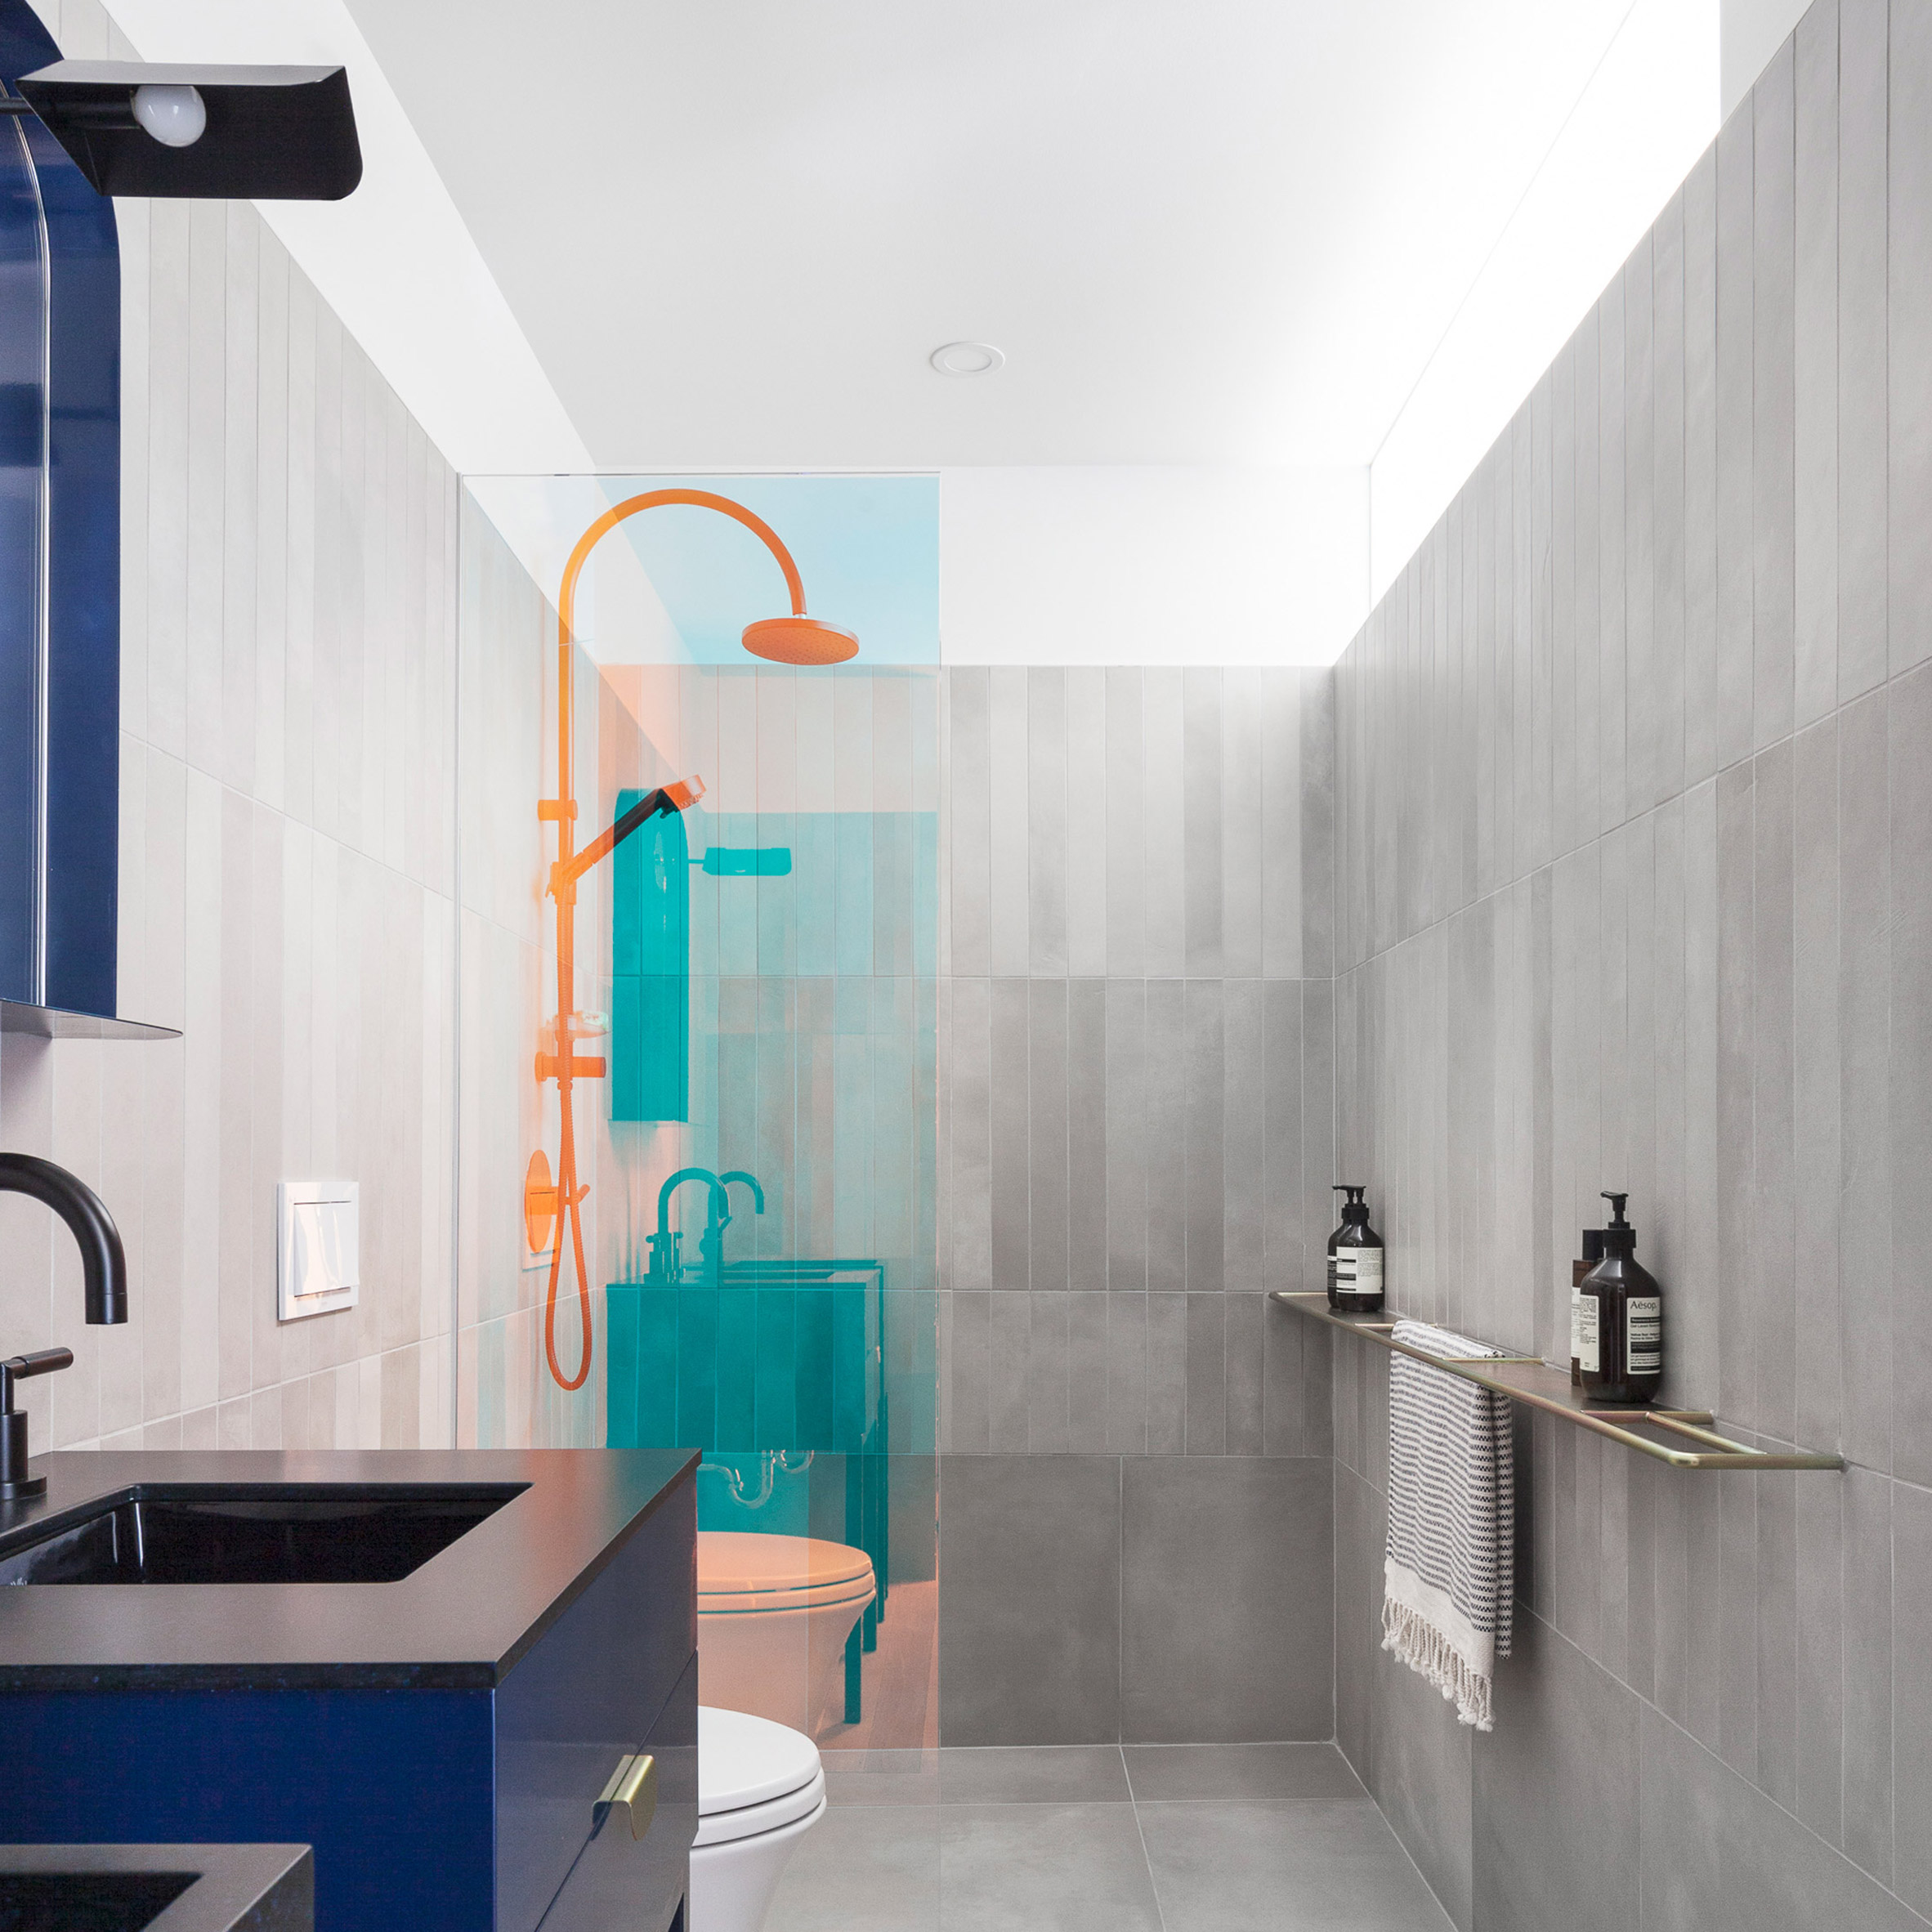 Bold bathrooms: Unit 622 in Habitat 67 by Rainville Sangaré